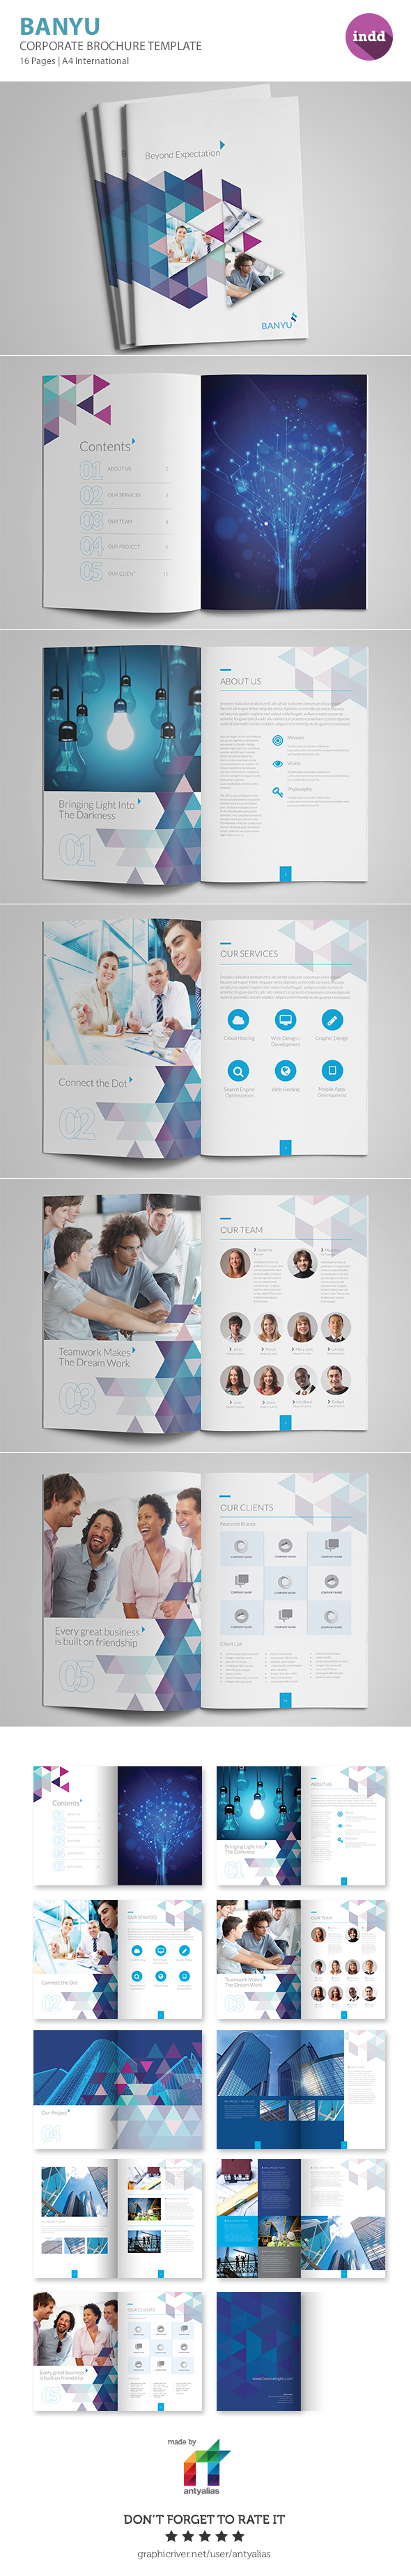 Banyu  Professional Corporate Brochure Templates By Alias Hamdi